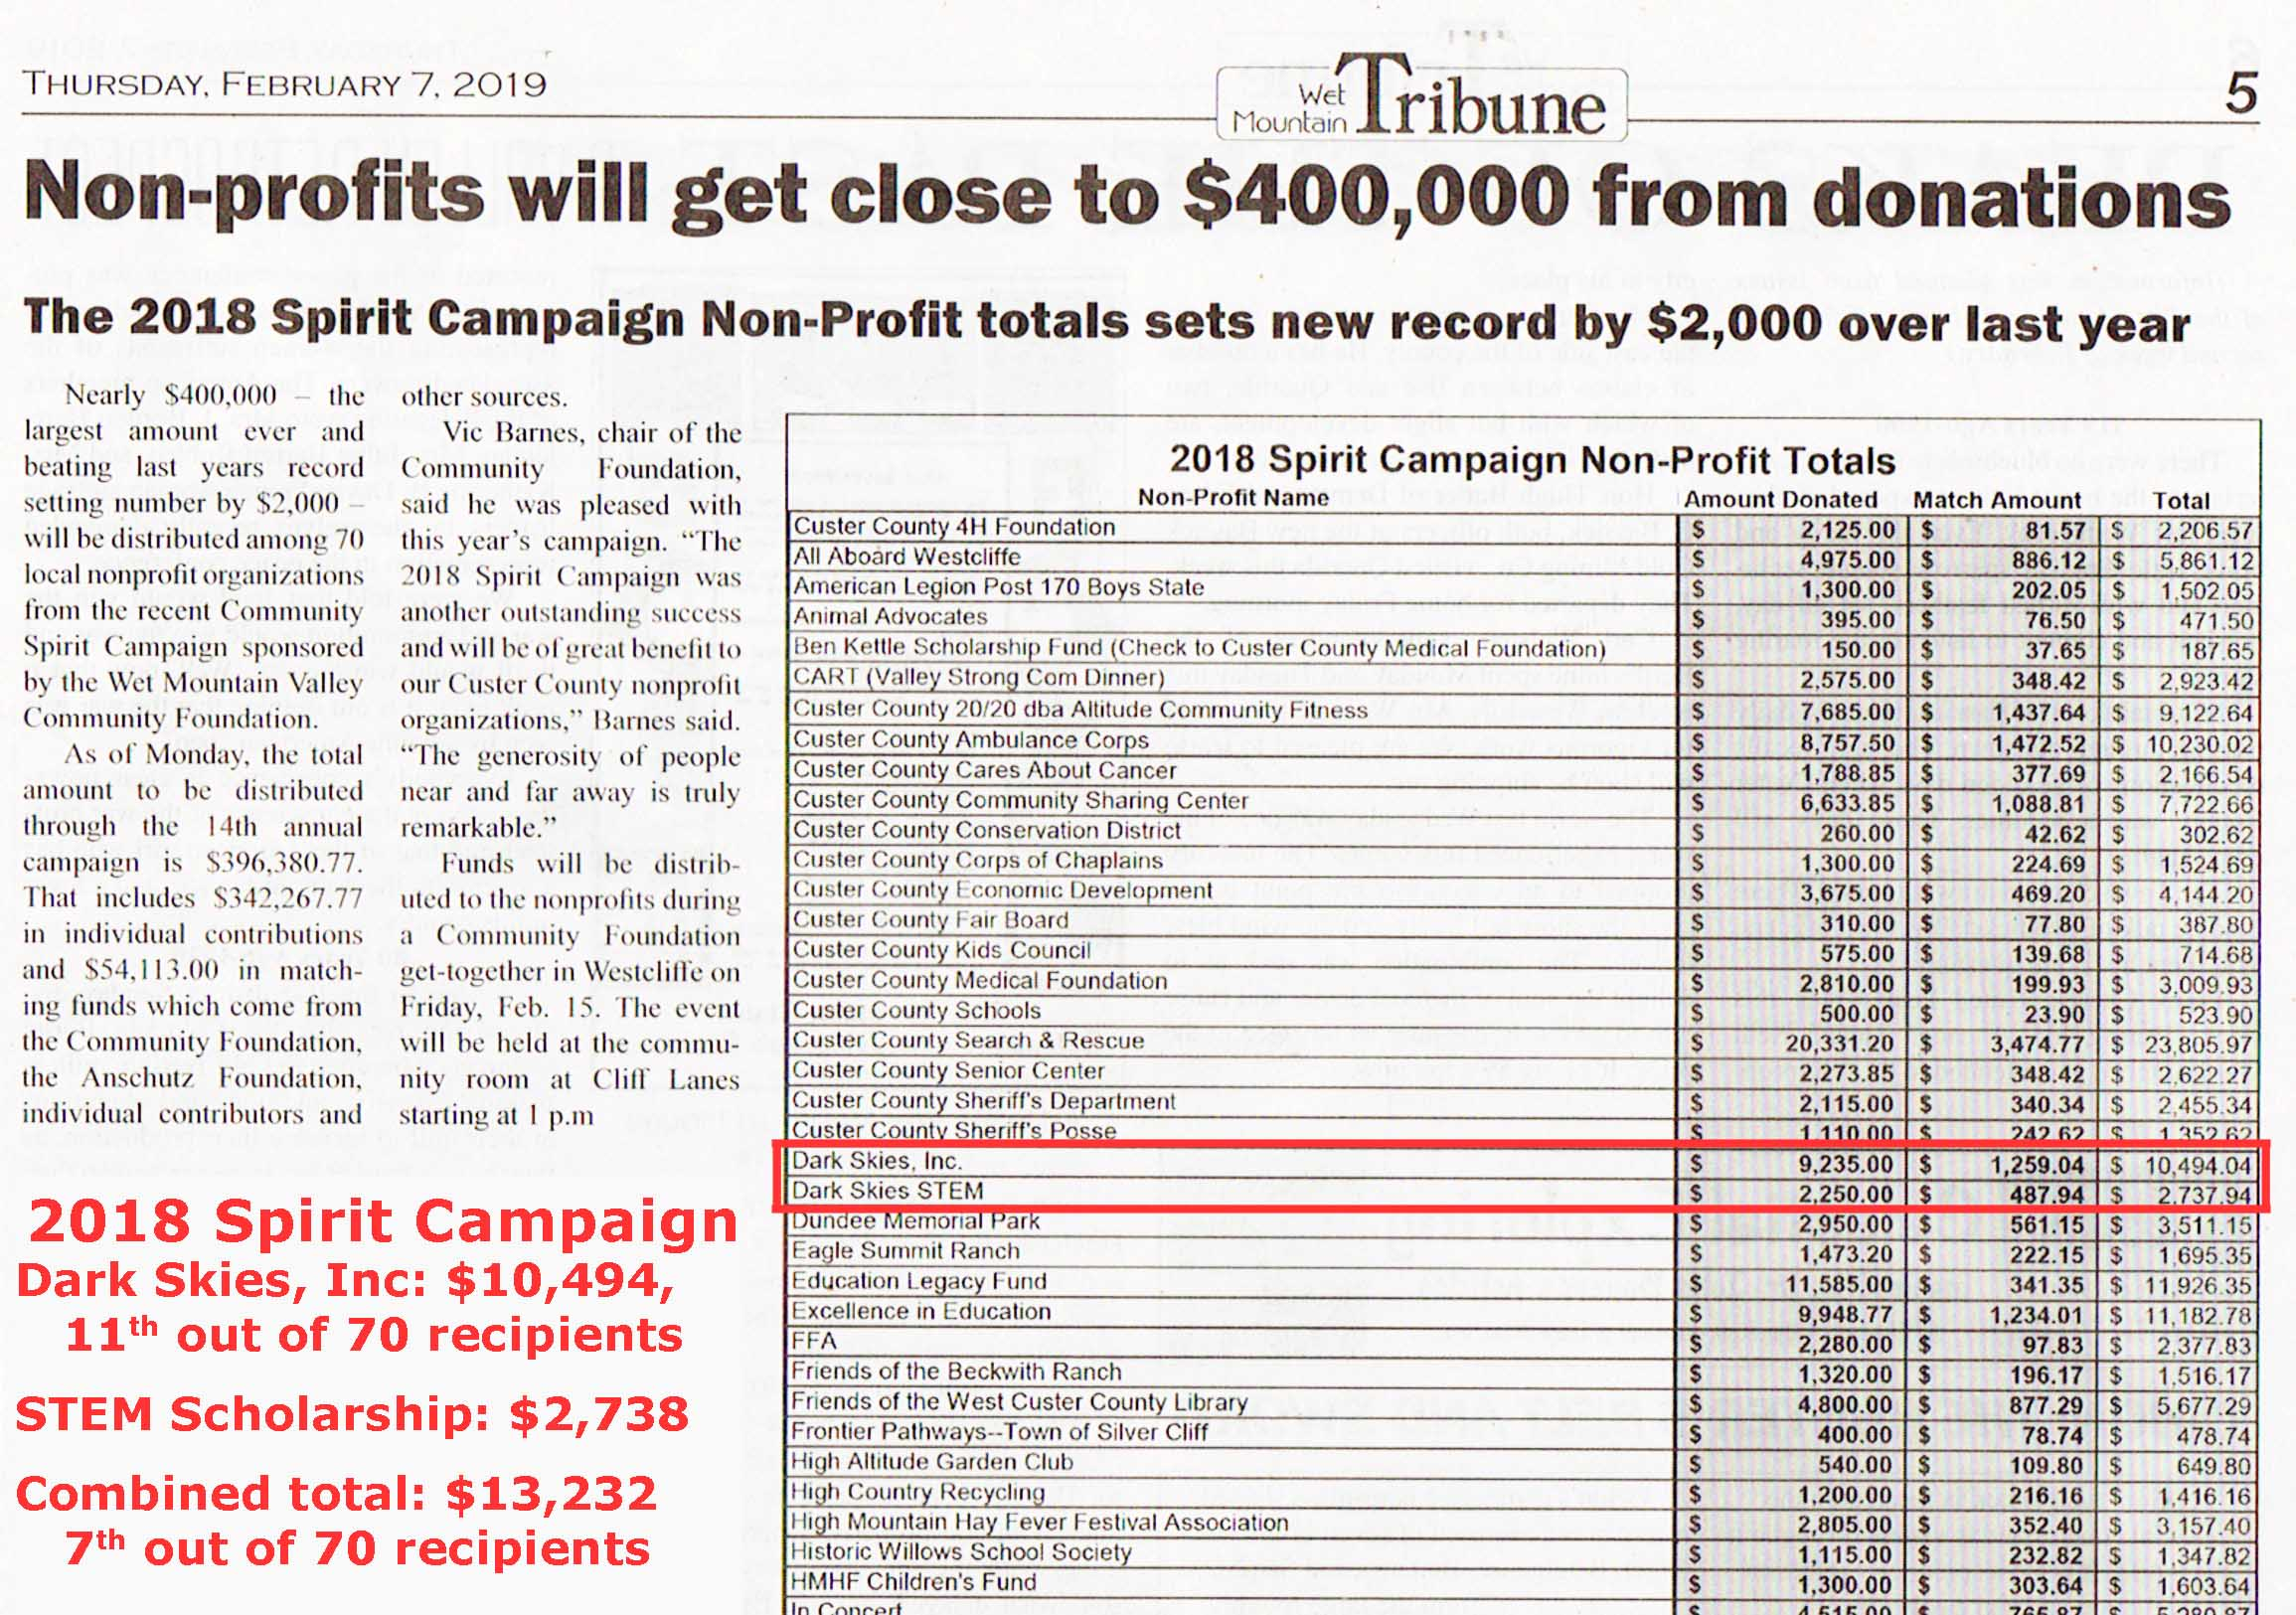 In spite of  not  having a specific campaign project or goal, Dark Skies has averaged about $10,000 annually since 2015. Only one email notice and one newspaper advertisement were used. This demonstrates the value of a long-term approach to soliciting donations. The STEM scholarship campaign was new for this year.